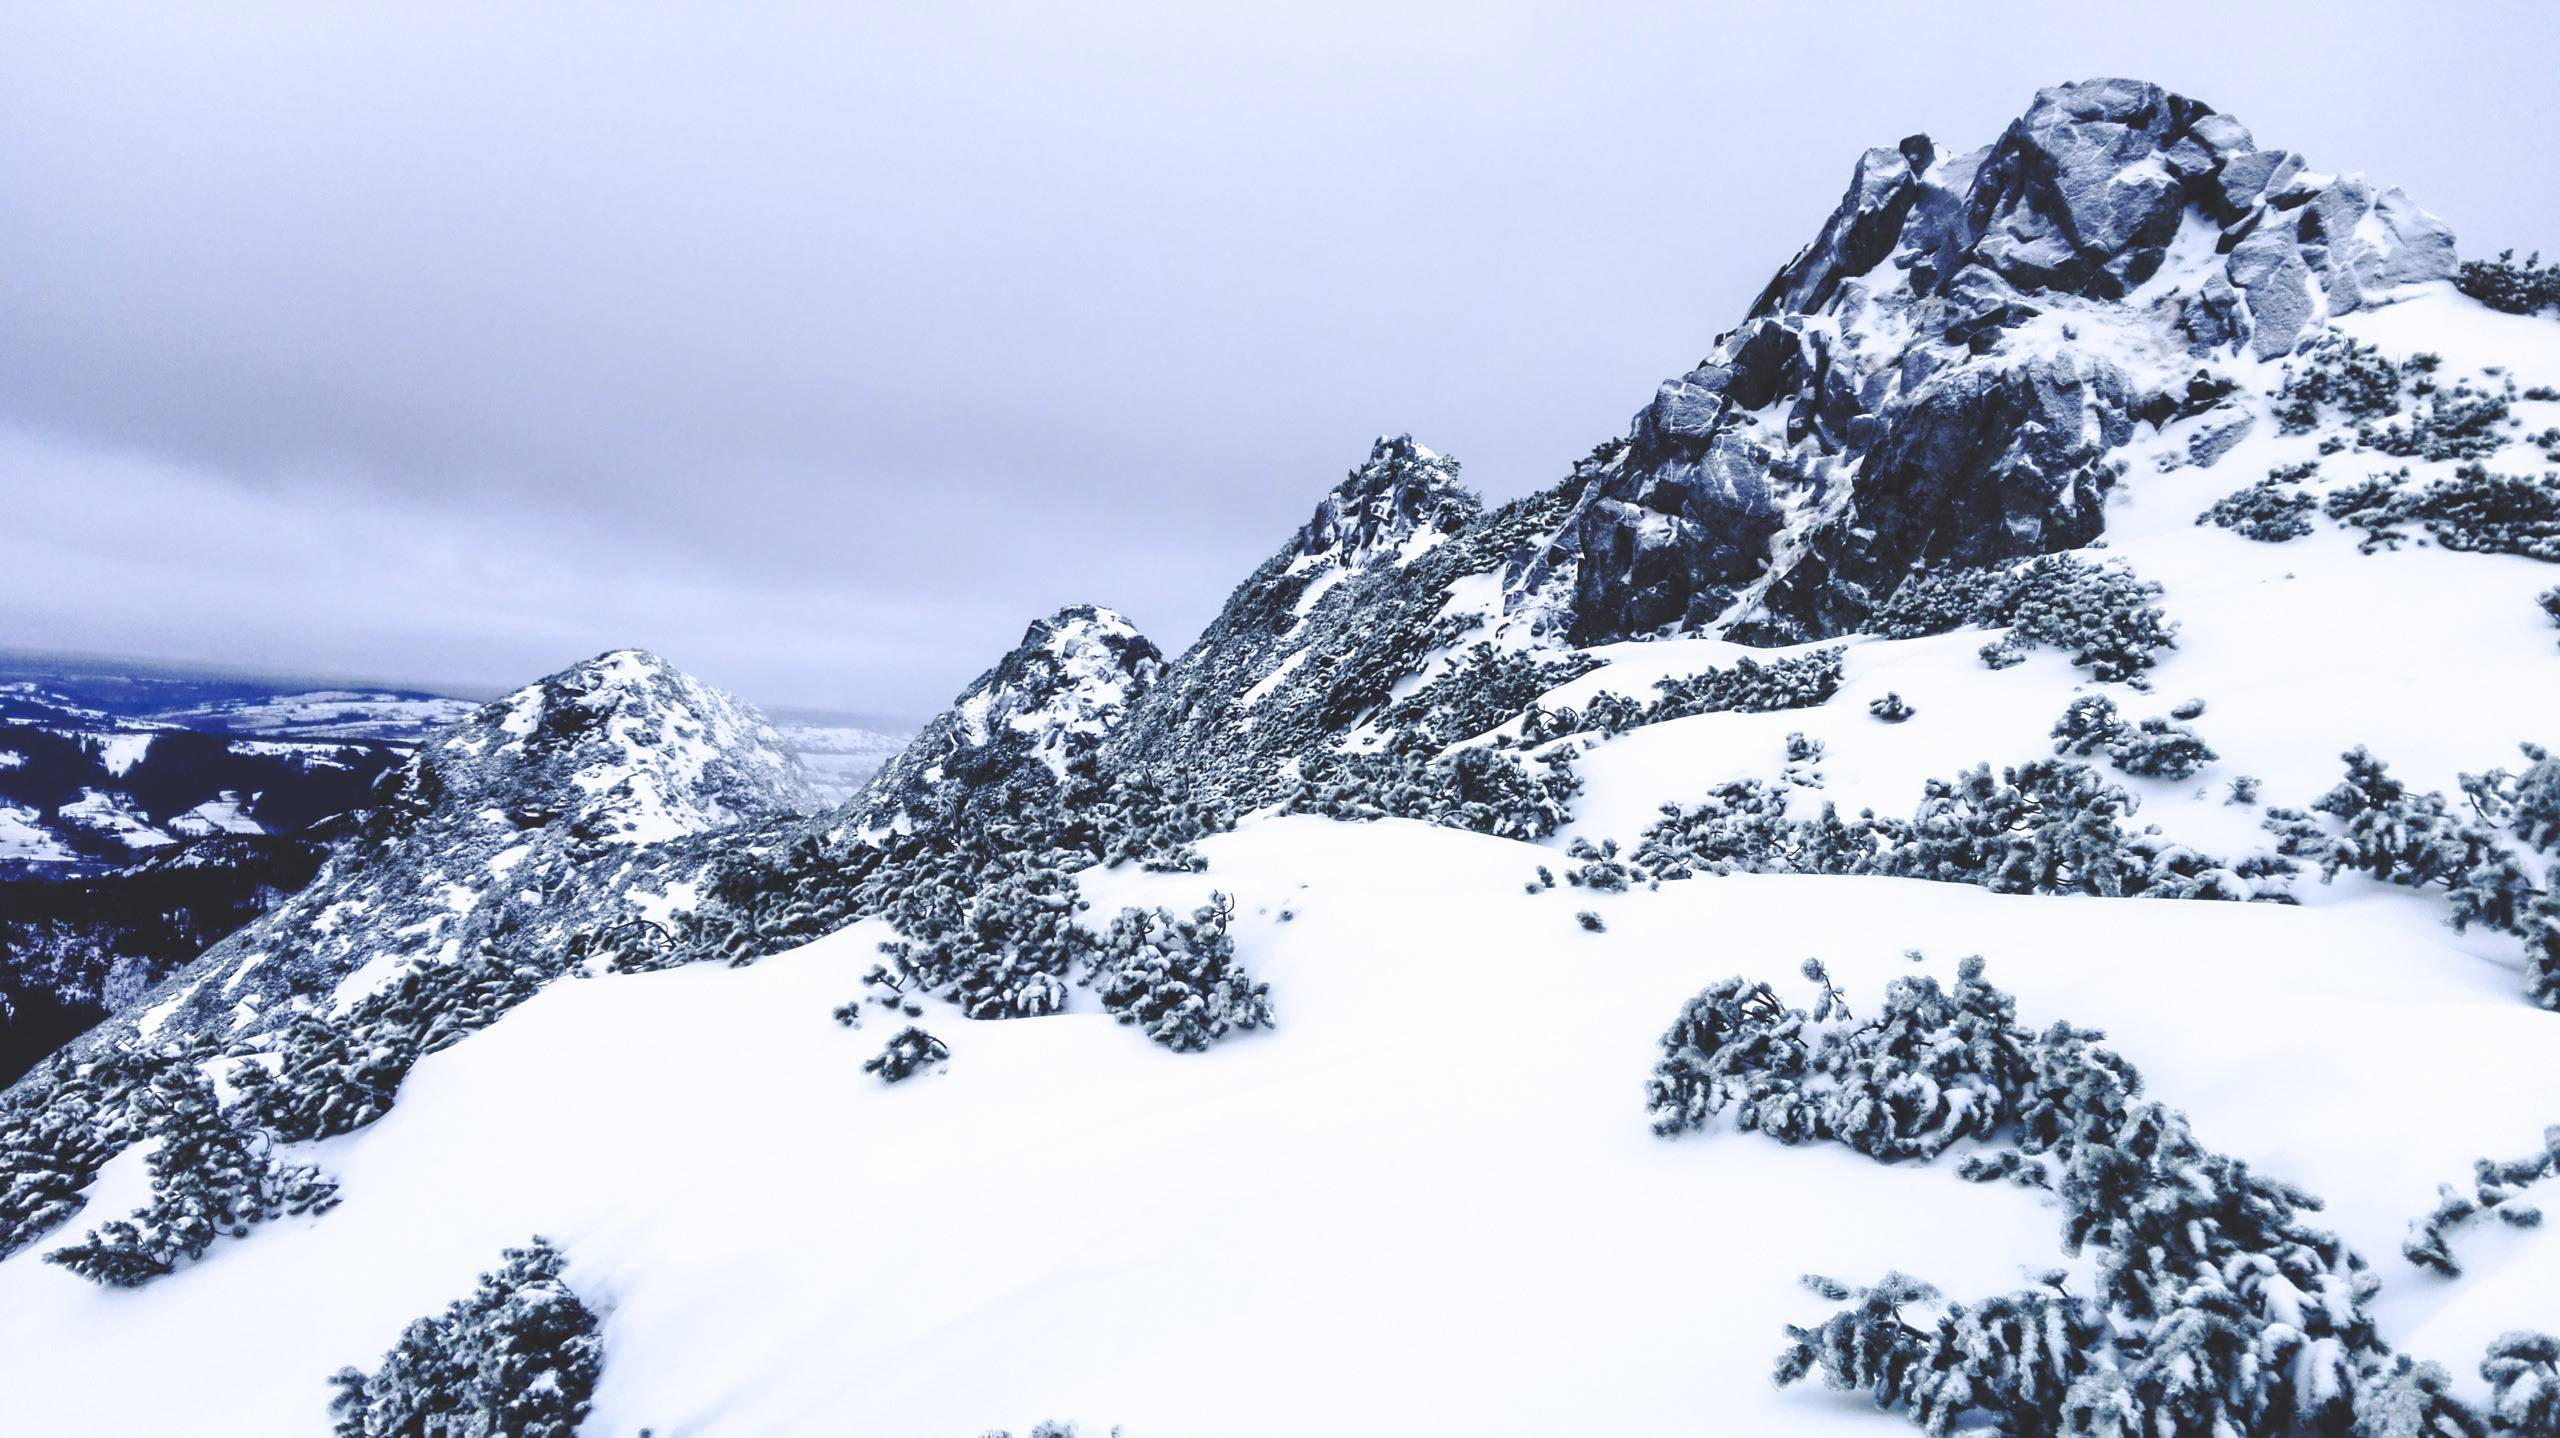 Sucha Czuba is one of the many High Tatra hills. Photo by Alis Monte [CC BY-SA 4.0], via Connecting the Dots